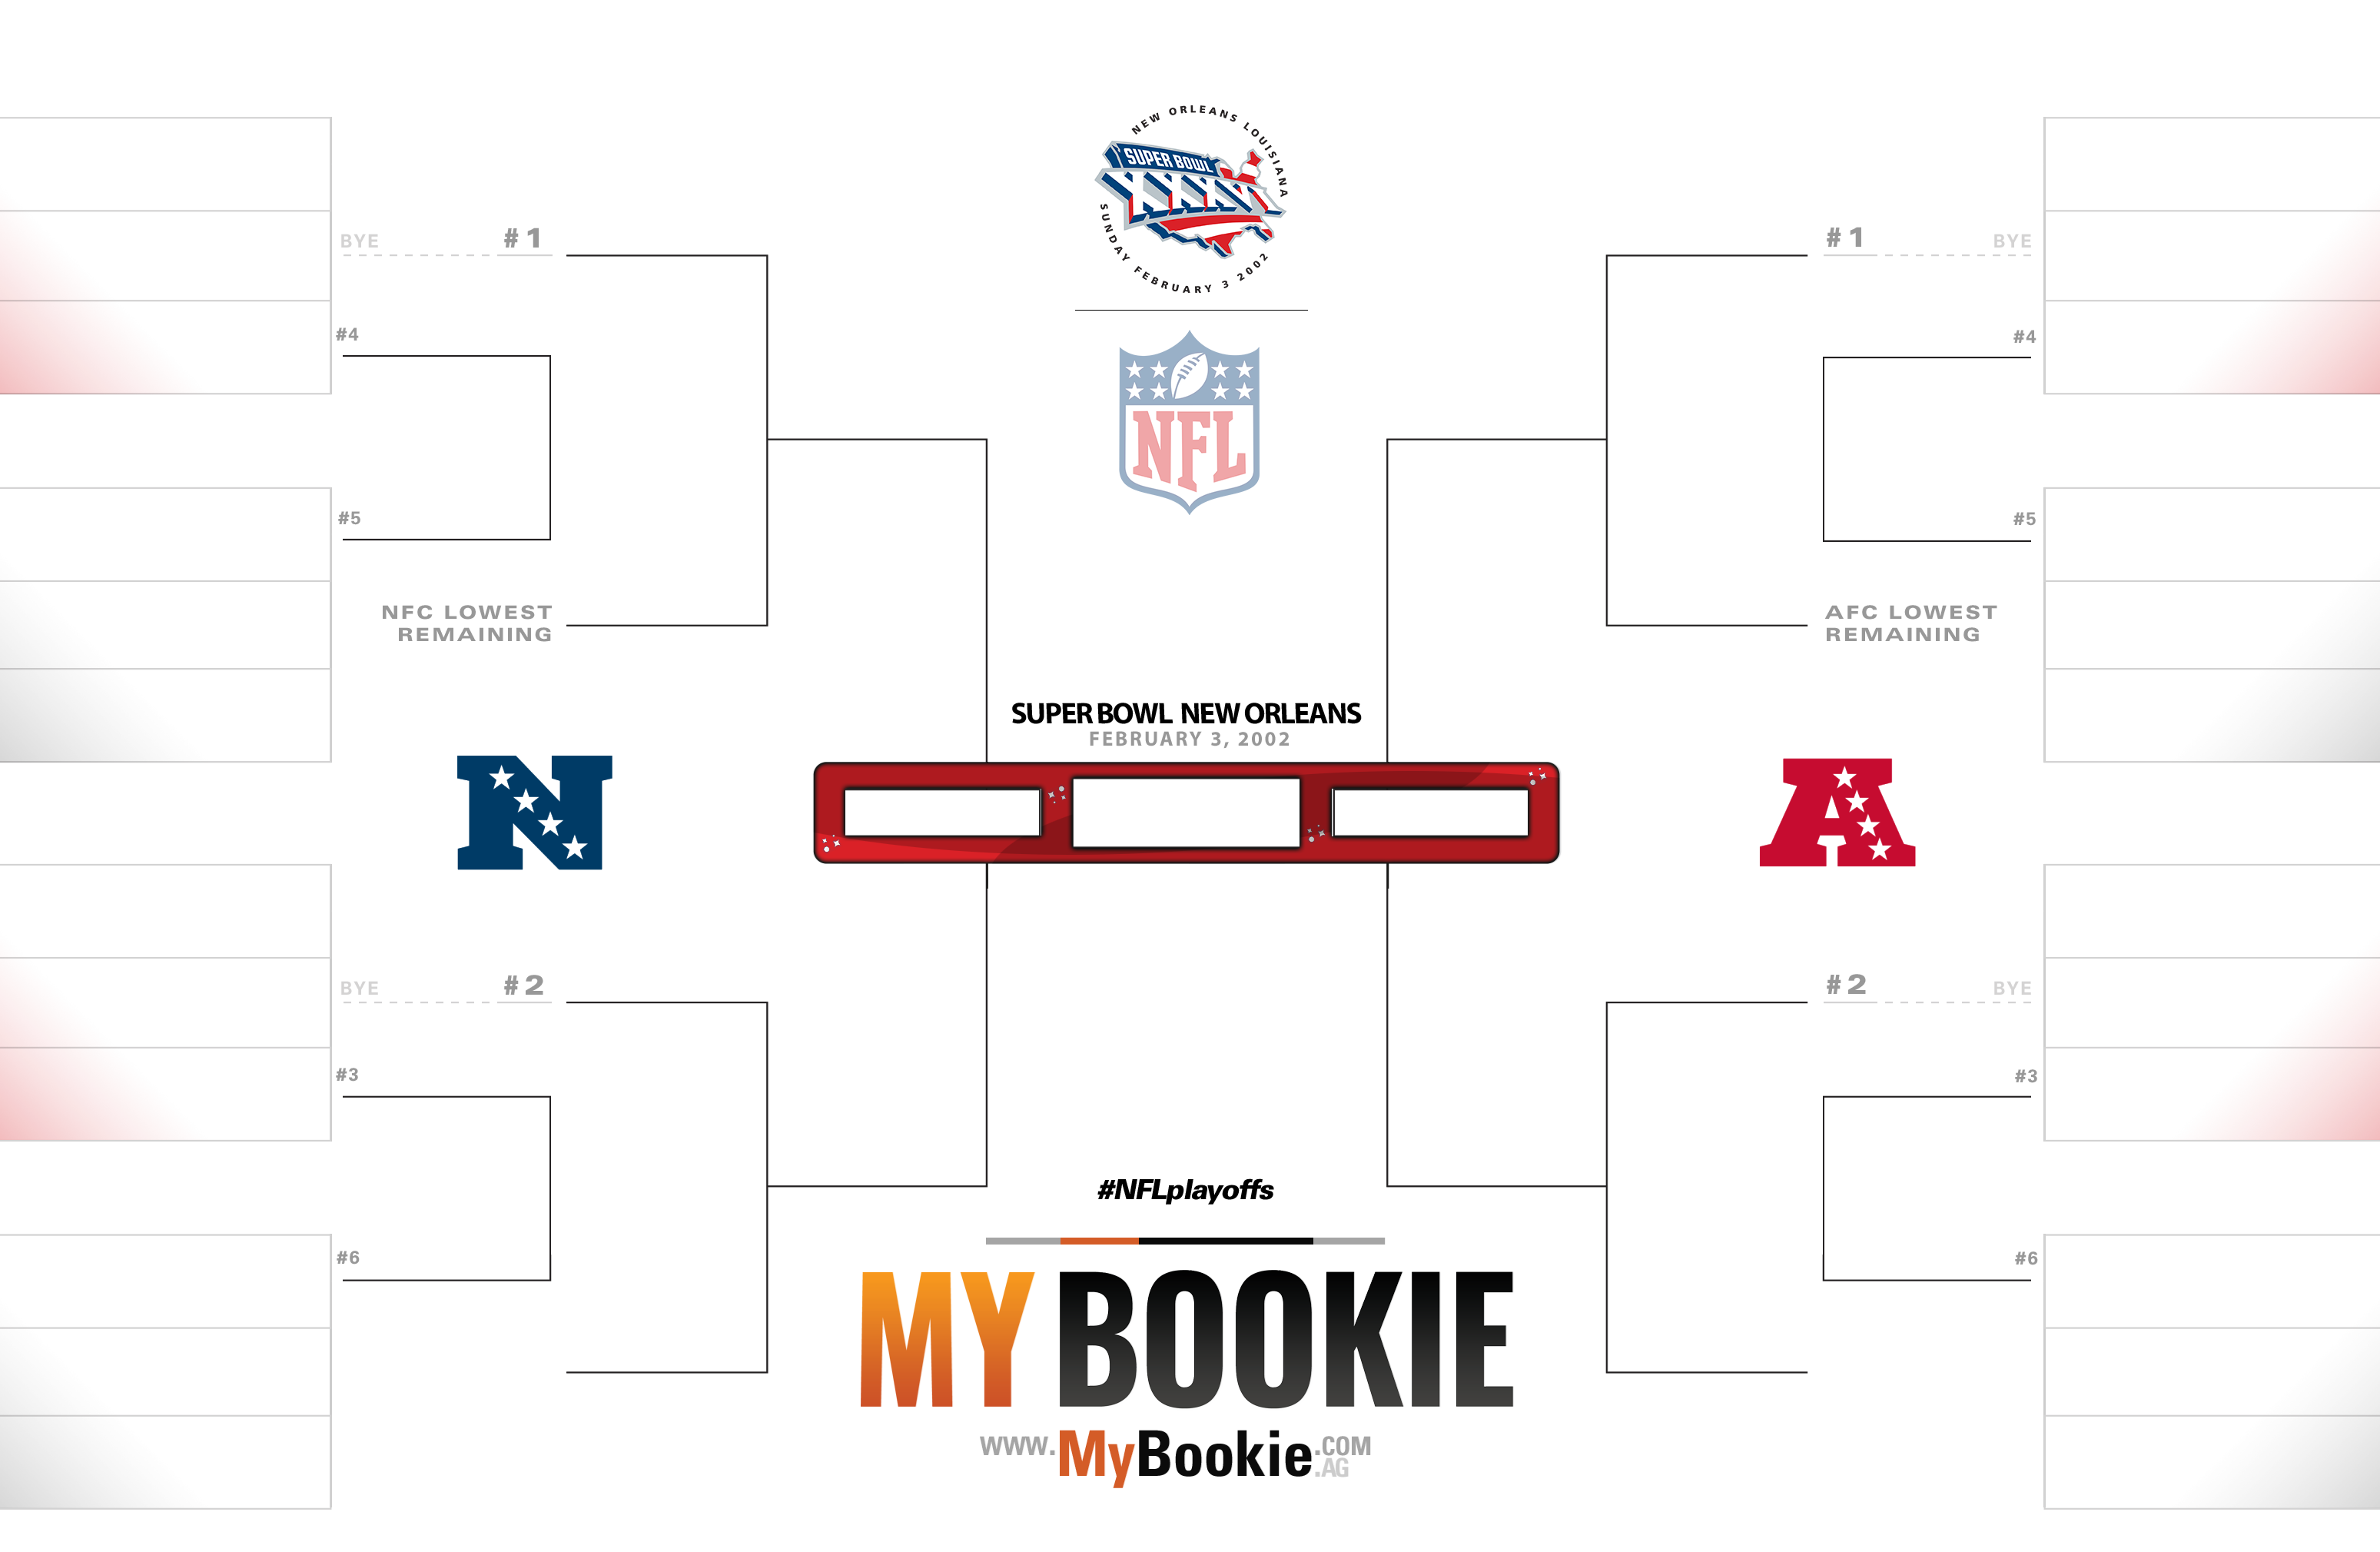 NFL Playoffs / Superbowl 2002 Printable Bracket